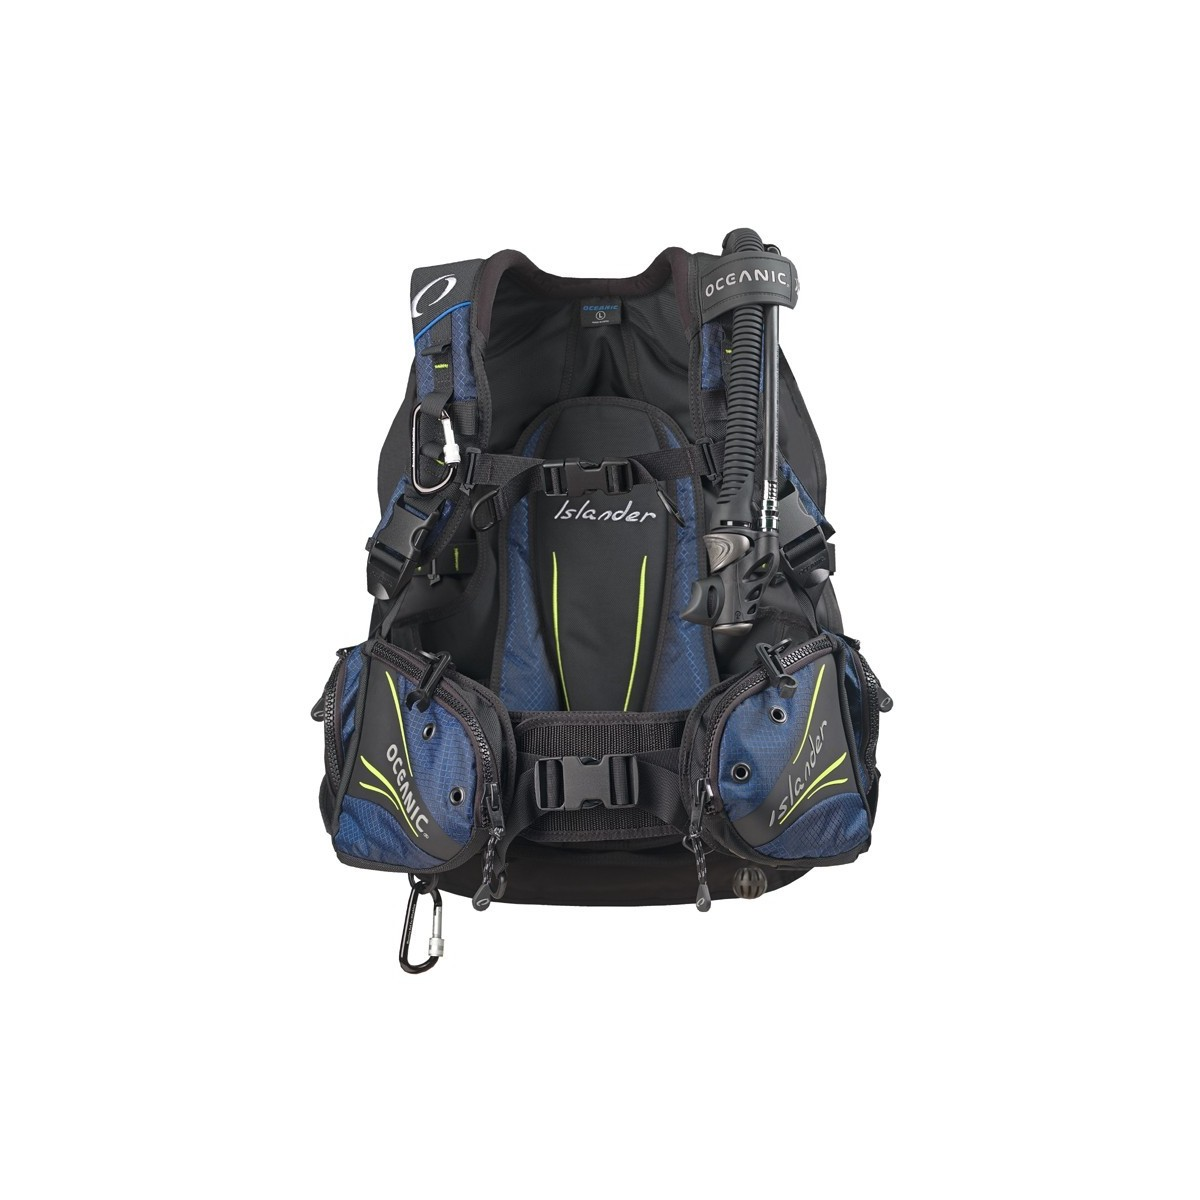 Oceanic Islander 2 Rear Inflation Travel Buoyancy Compensator BCD